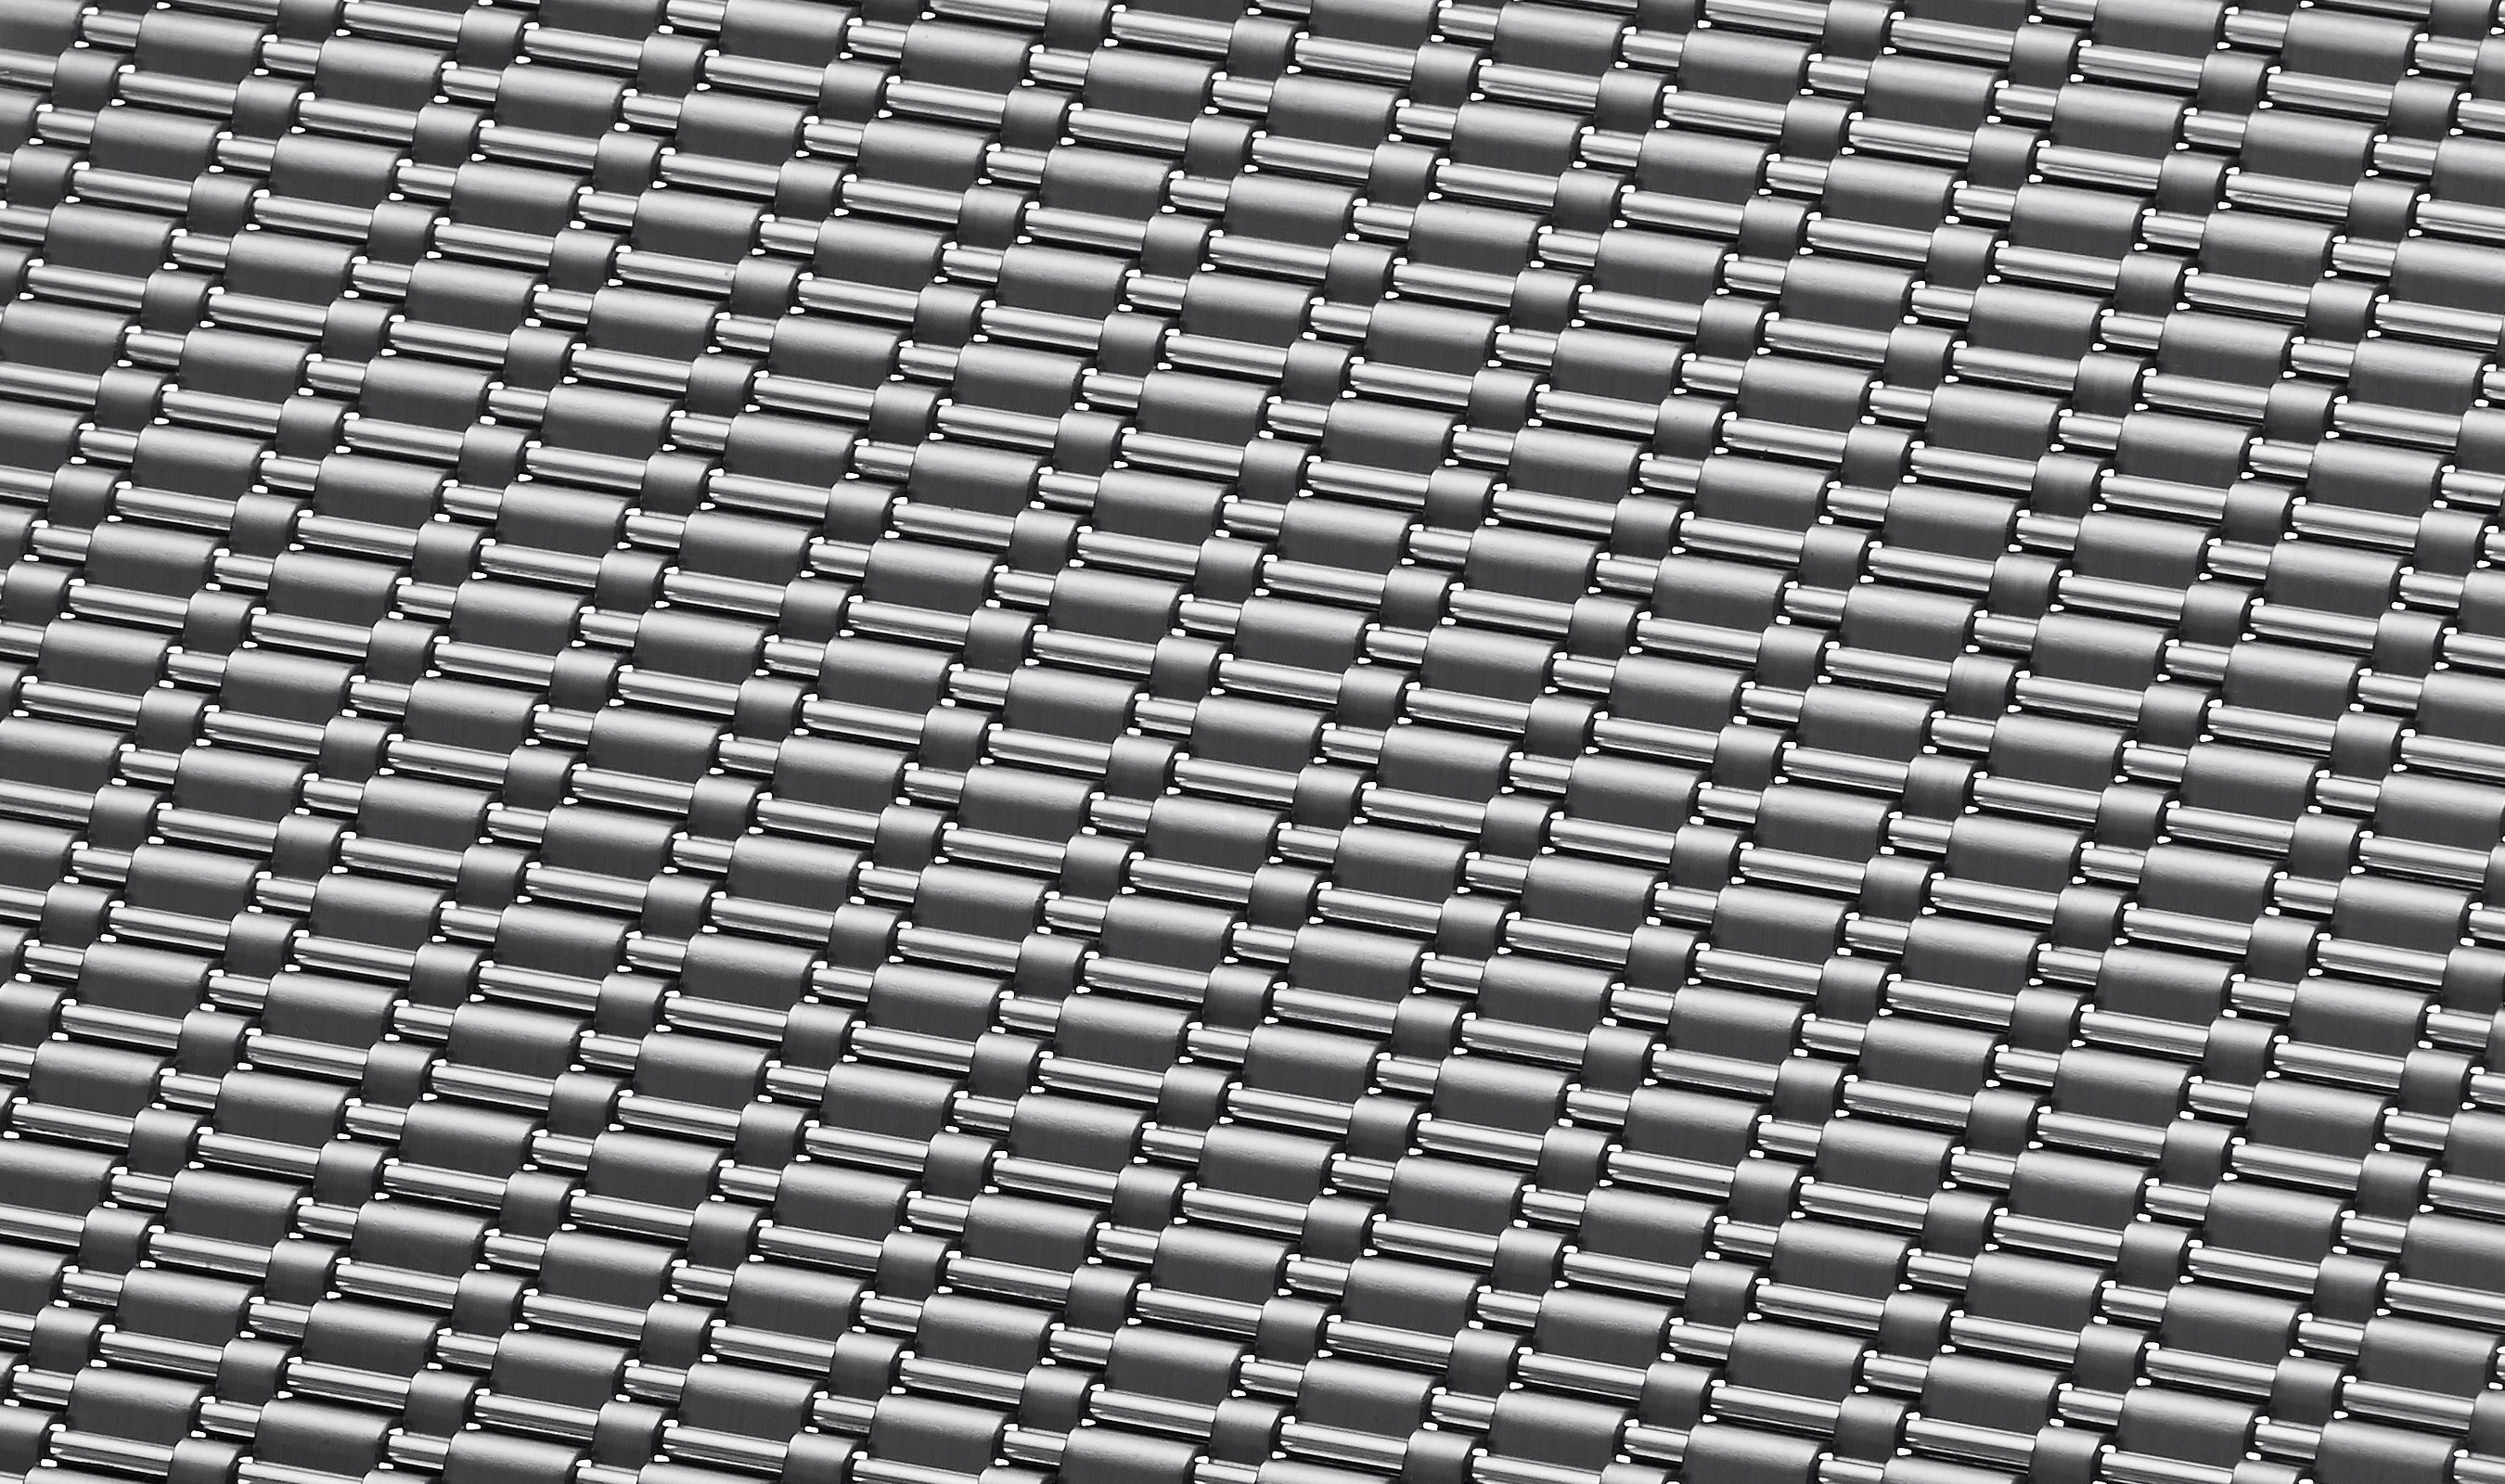 DS-7 woven wire mesh pattern